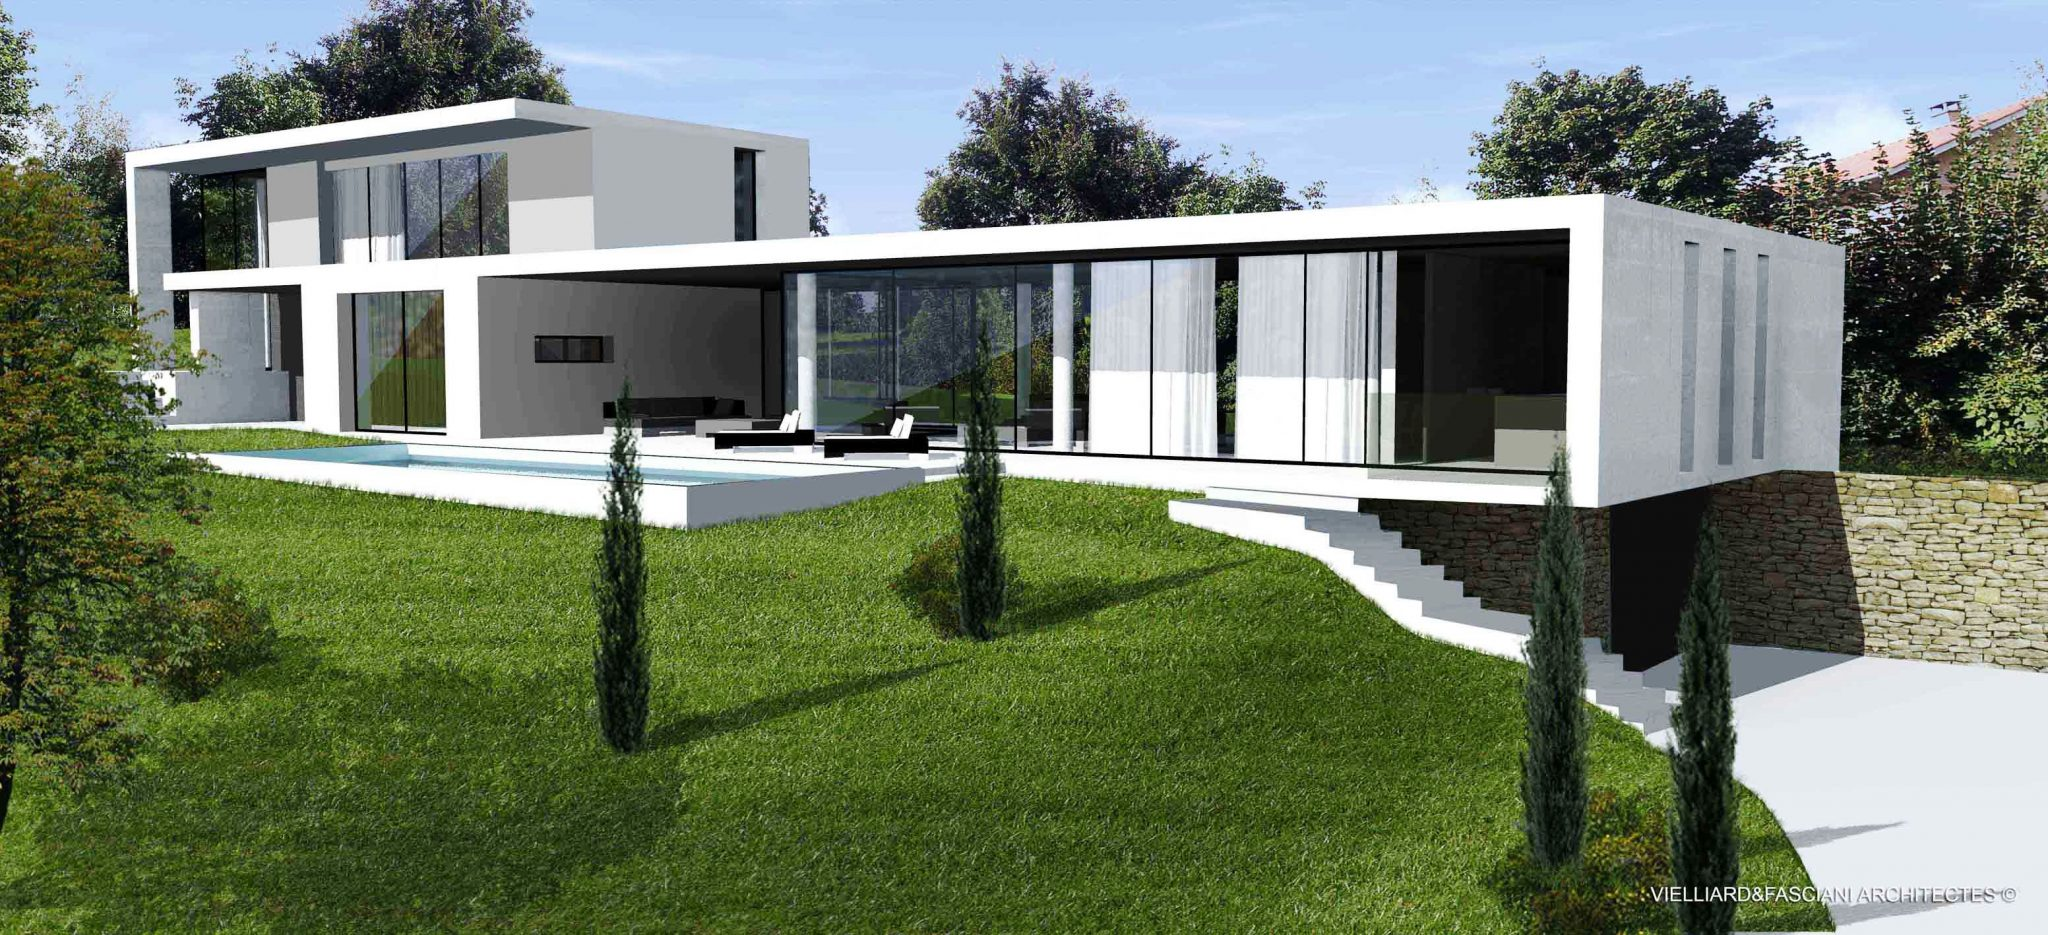 Architecture des villas modernes mc immo for Architecture des villas modernes